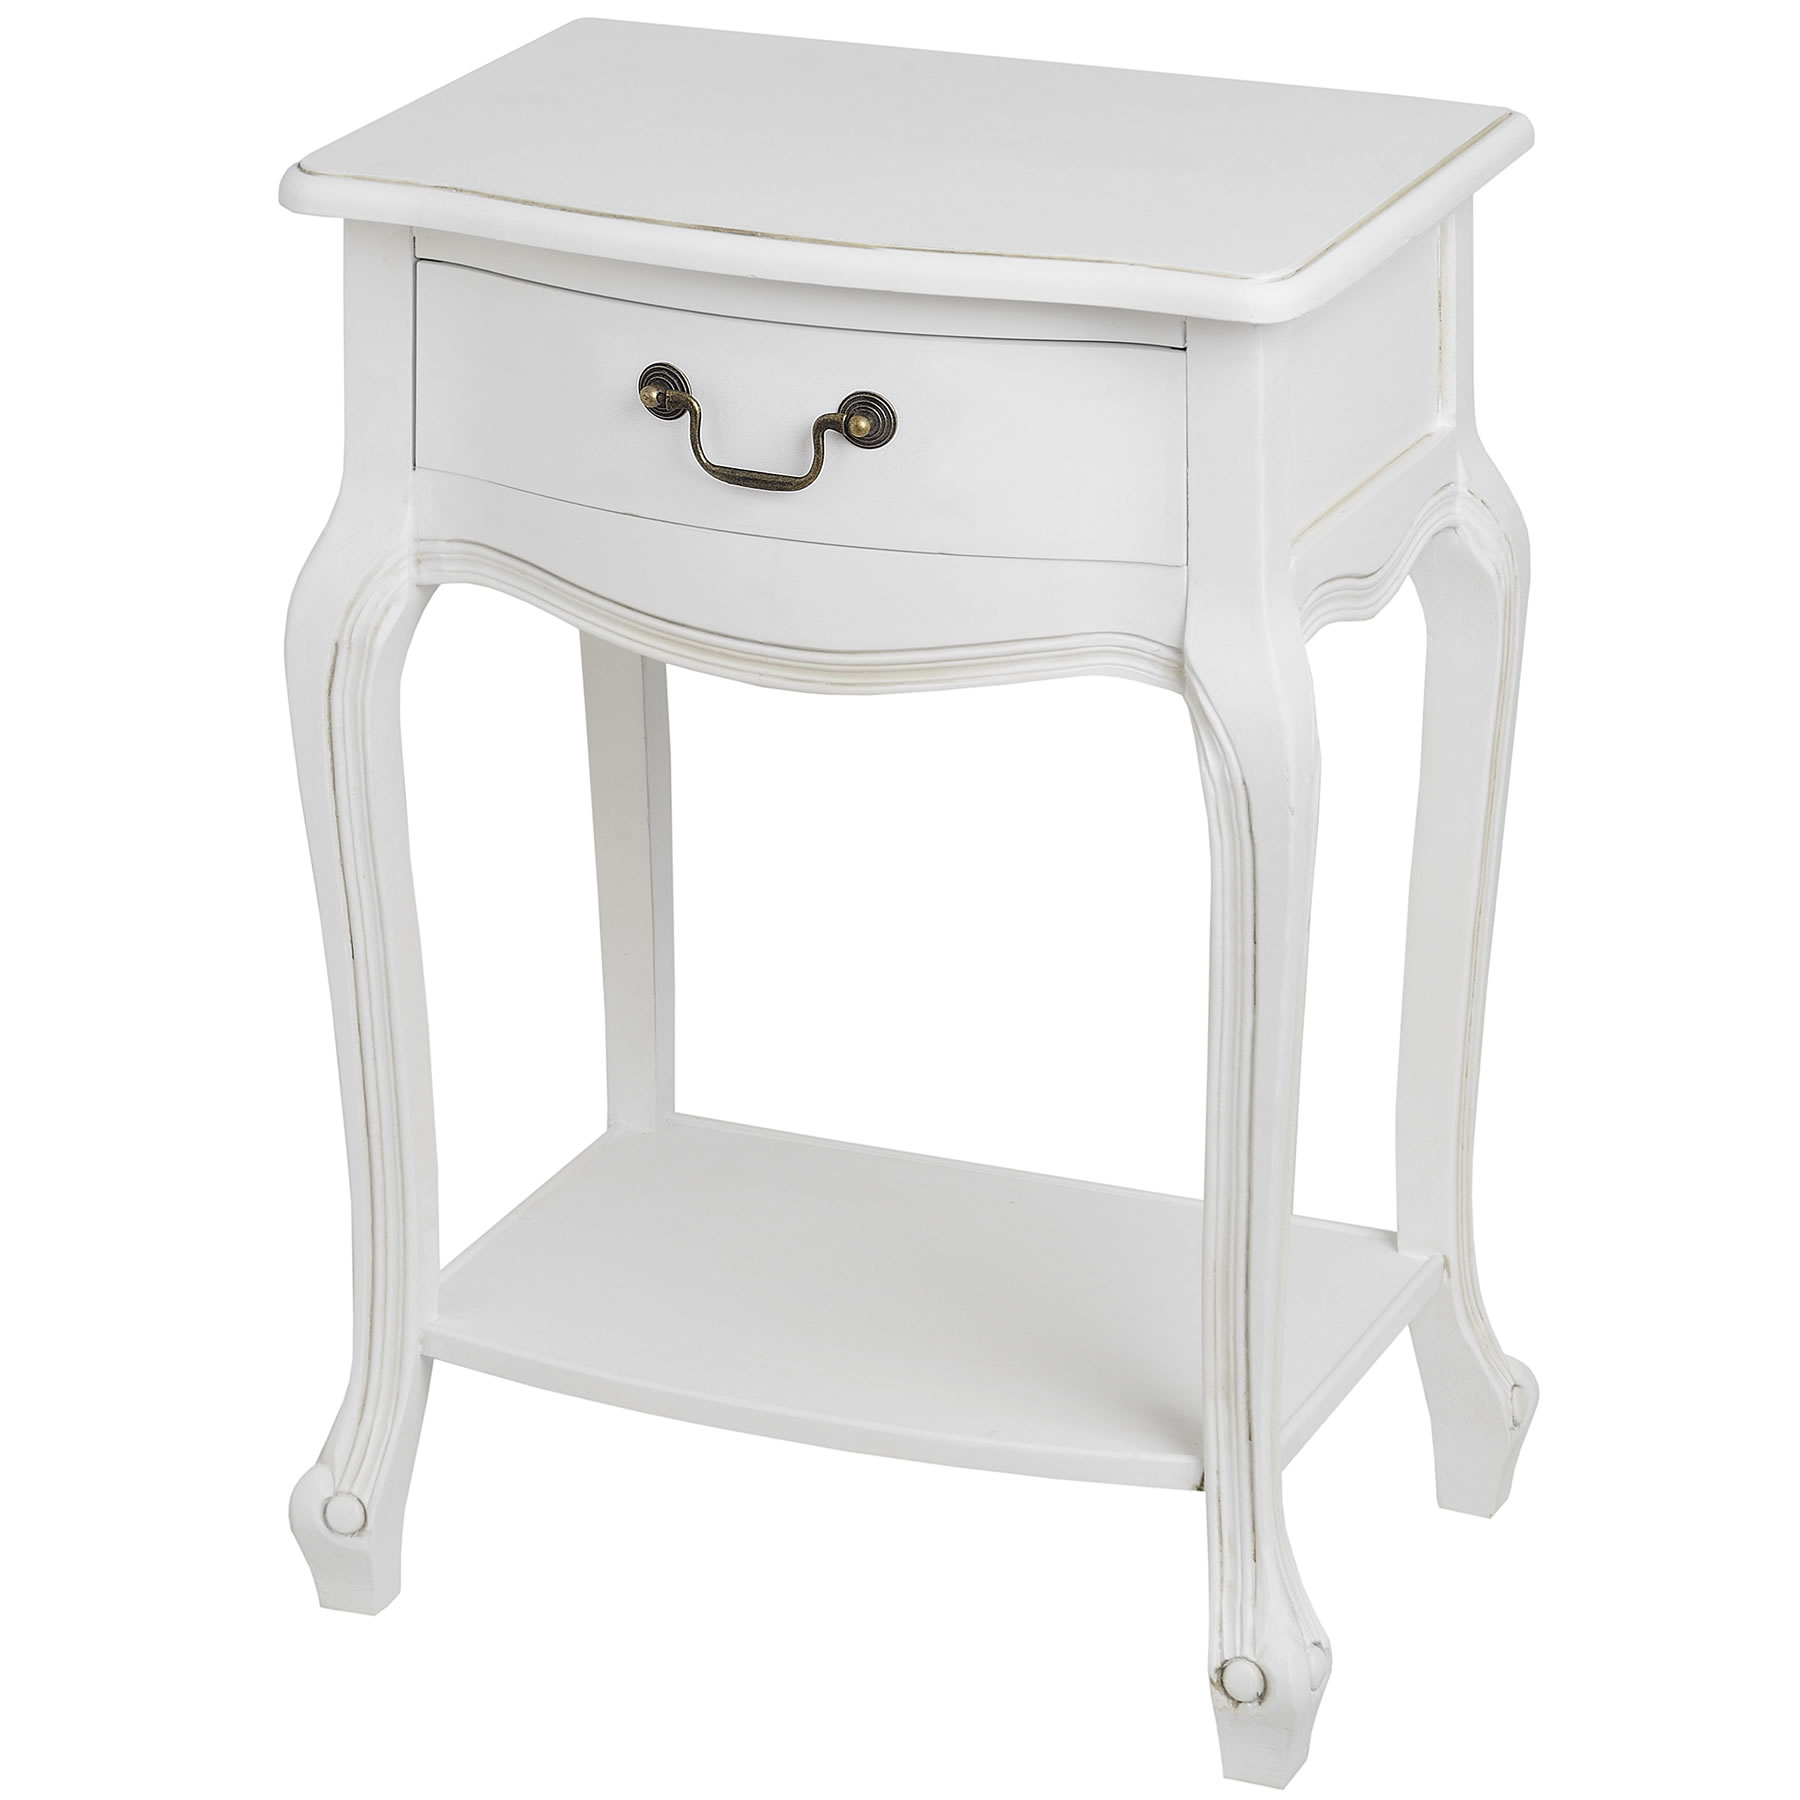 tiny side table design wonderful home furniture ideas hylands cool tripod three legged small round well for bedside black accent with storage grey trestle glass kitchen drum